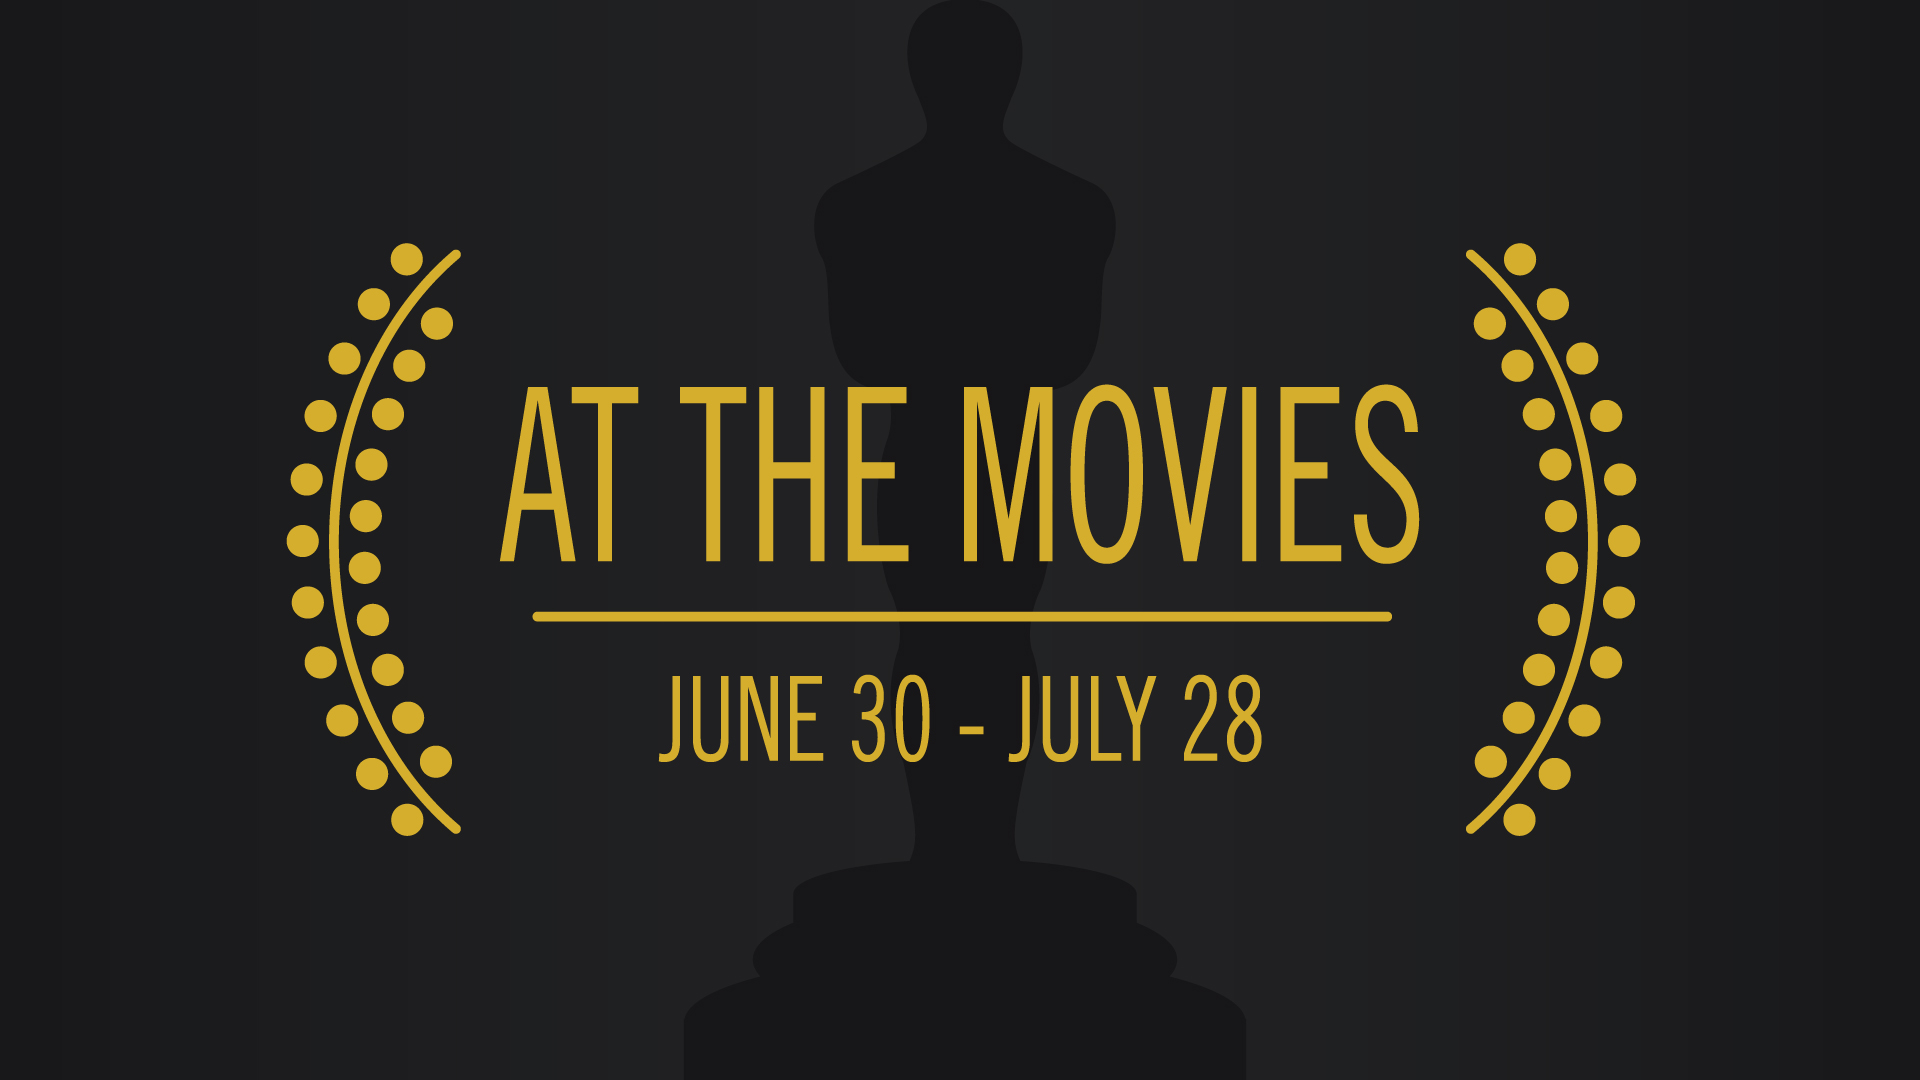 We are AT THE MOVIES this summer - and you're invited! Join us as we watch some of our favorite new movies and then talk about different Gospel truths we see in them!